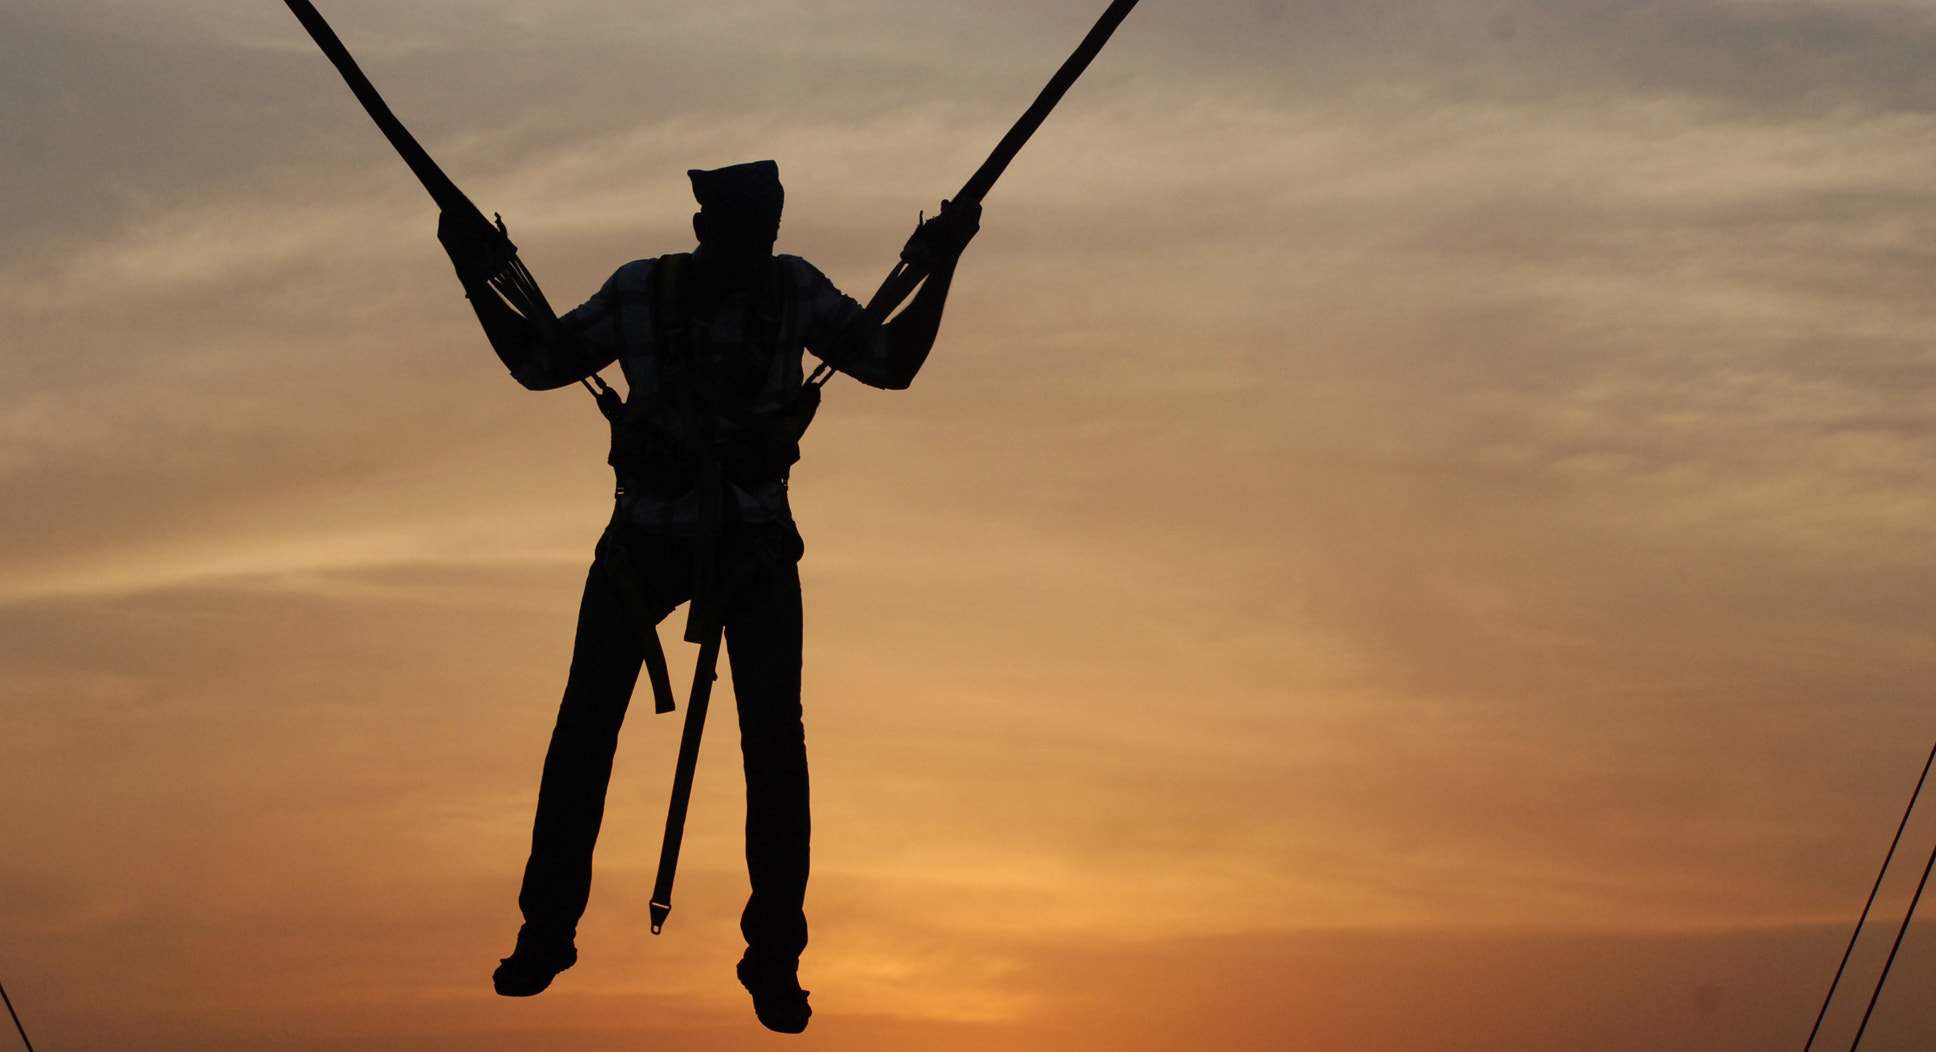 Photograph Rope Jumping by Sureshkumar Gopal on 500px